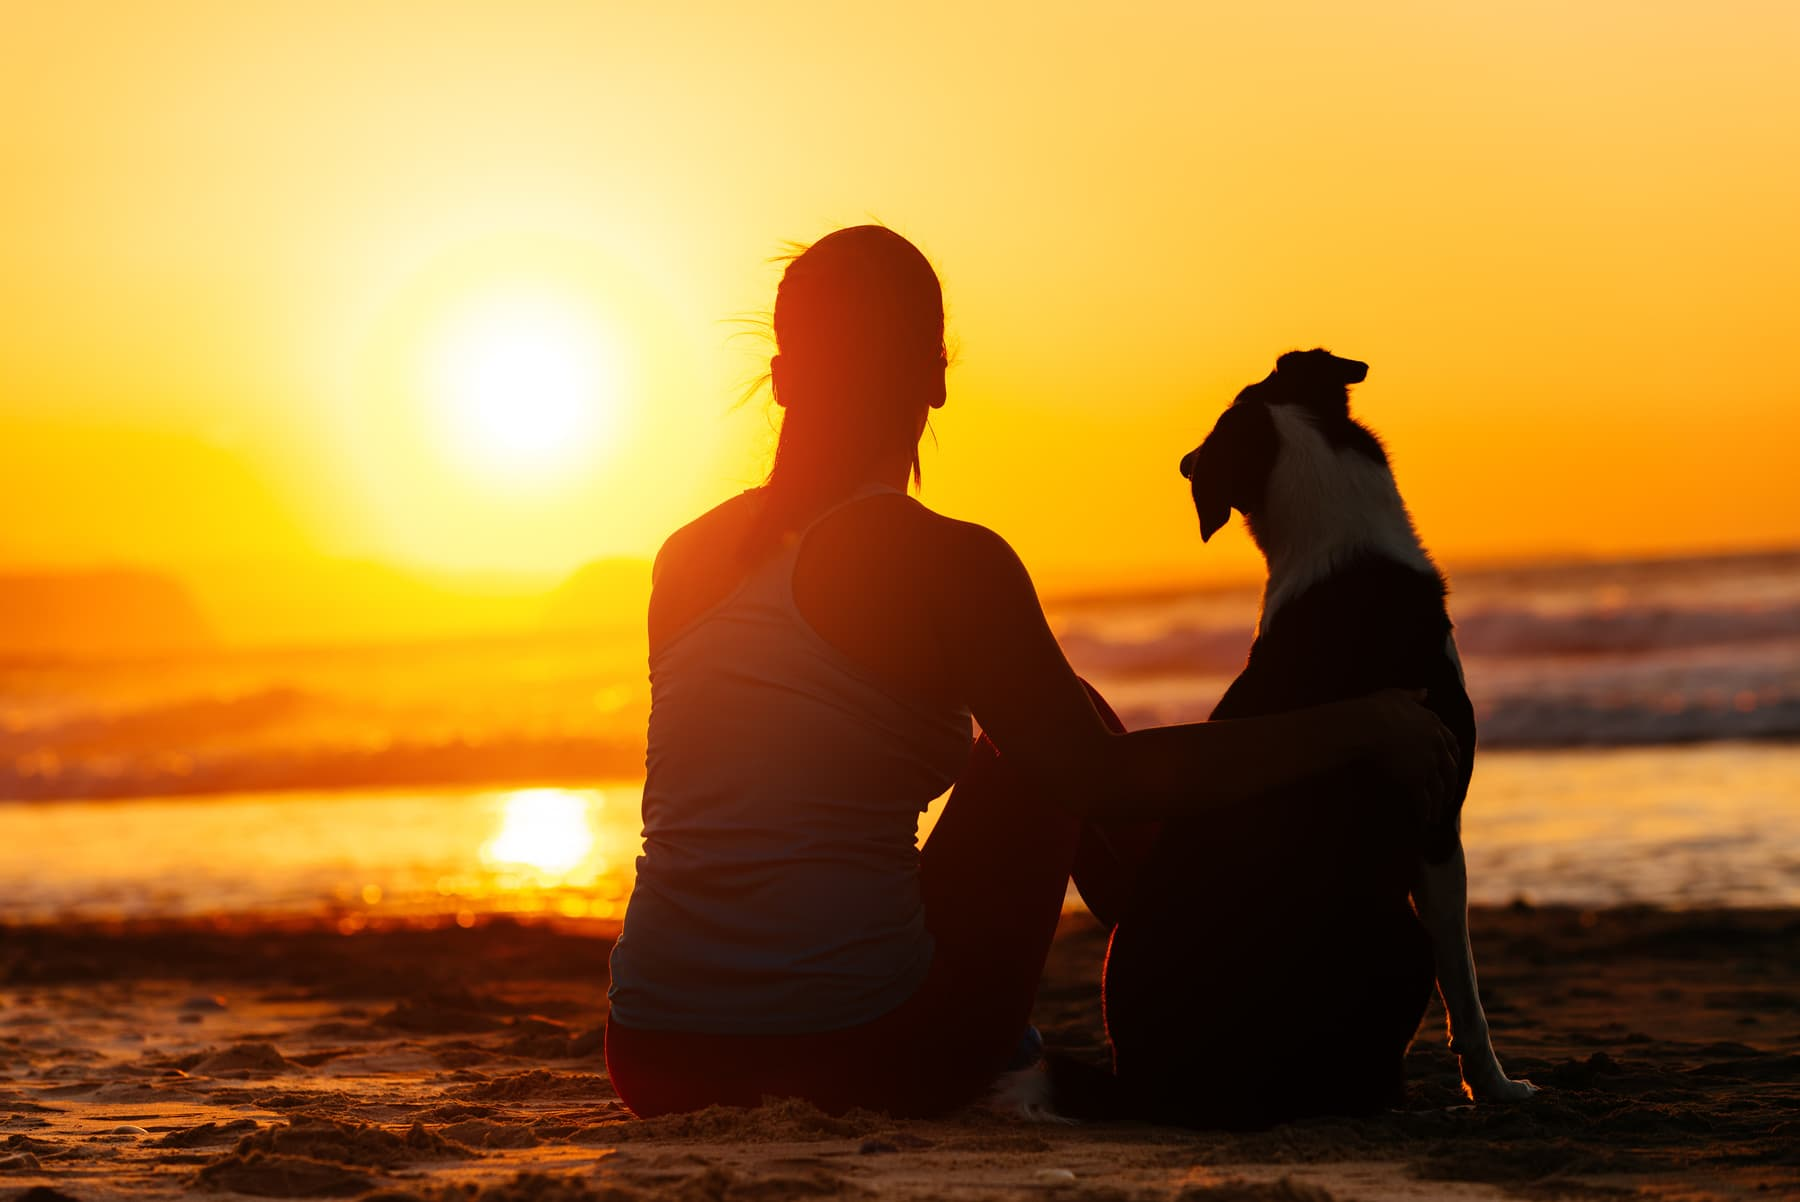 Relaxed woman and dog enjoying summer sunset or sunrise over the sea sitting on the sand at the beach.